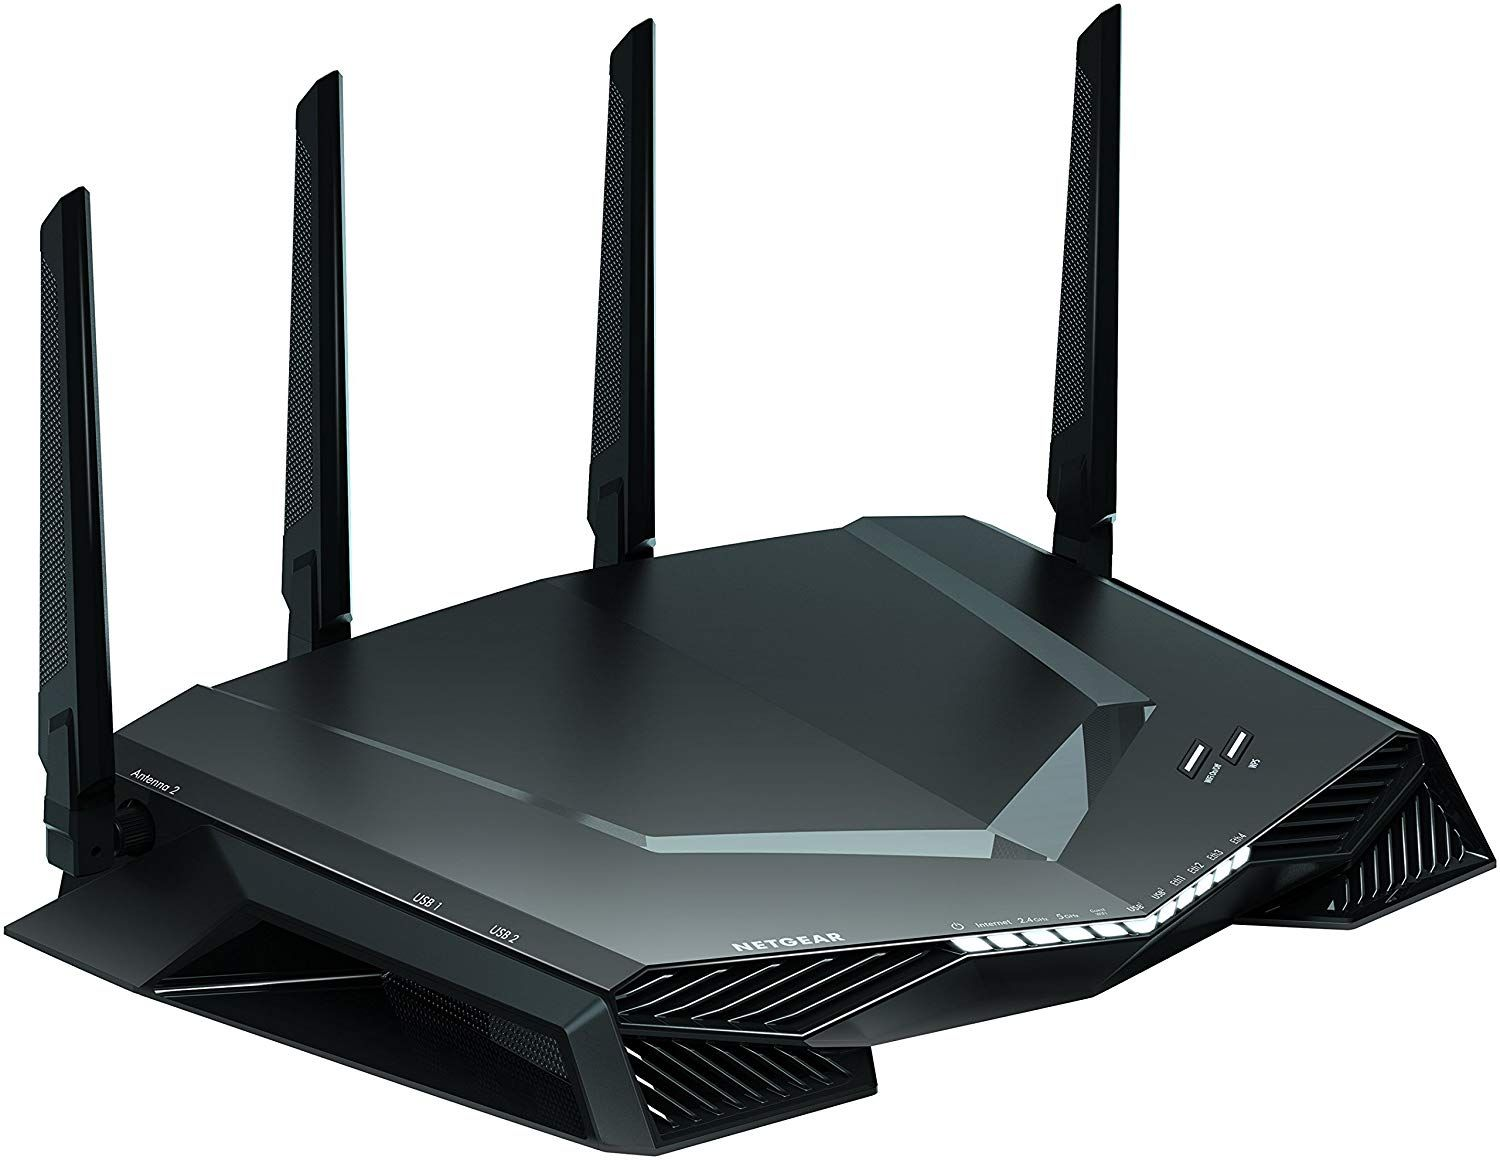 Amazon Com Netgear Xr500 Nighthawk Pro Gaming Wifi Router Ac2600 Dual Band Wireless Gigabit Ethernet Velocidades Control Netgear Router Wifi Router Netgear